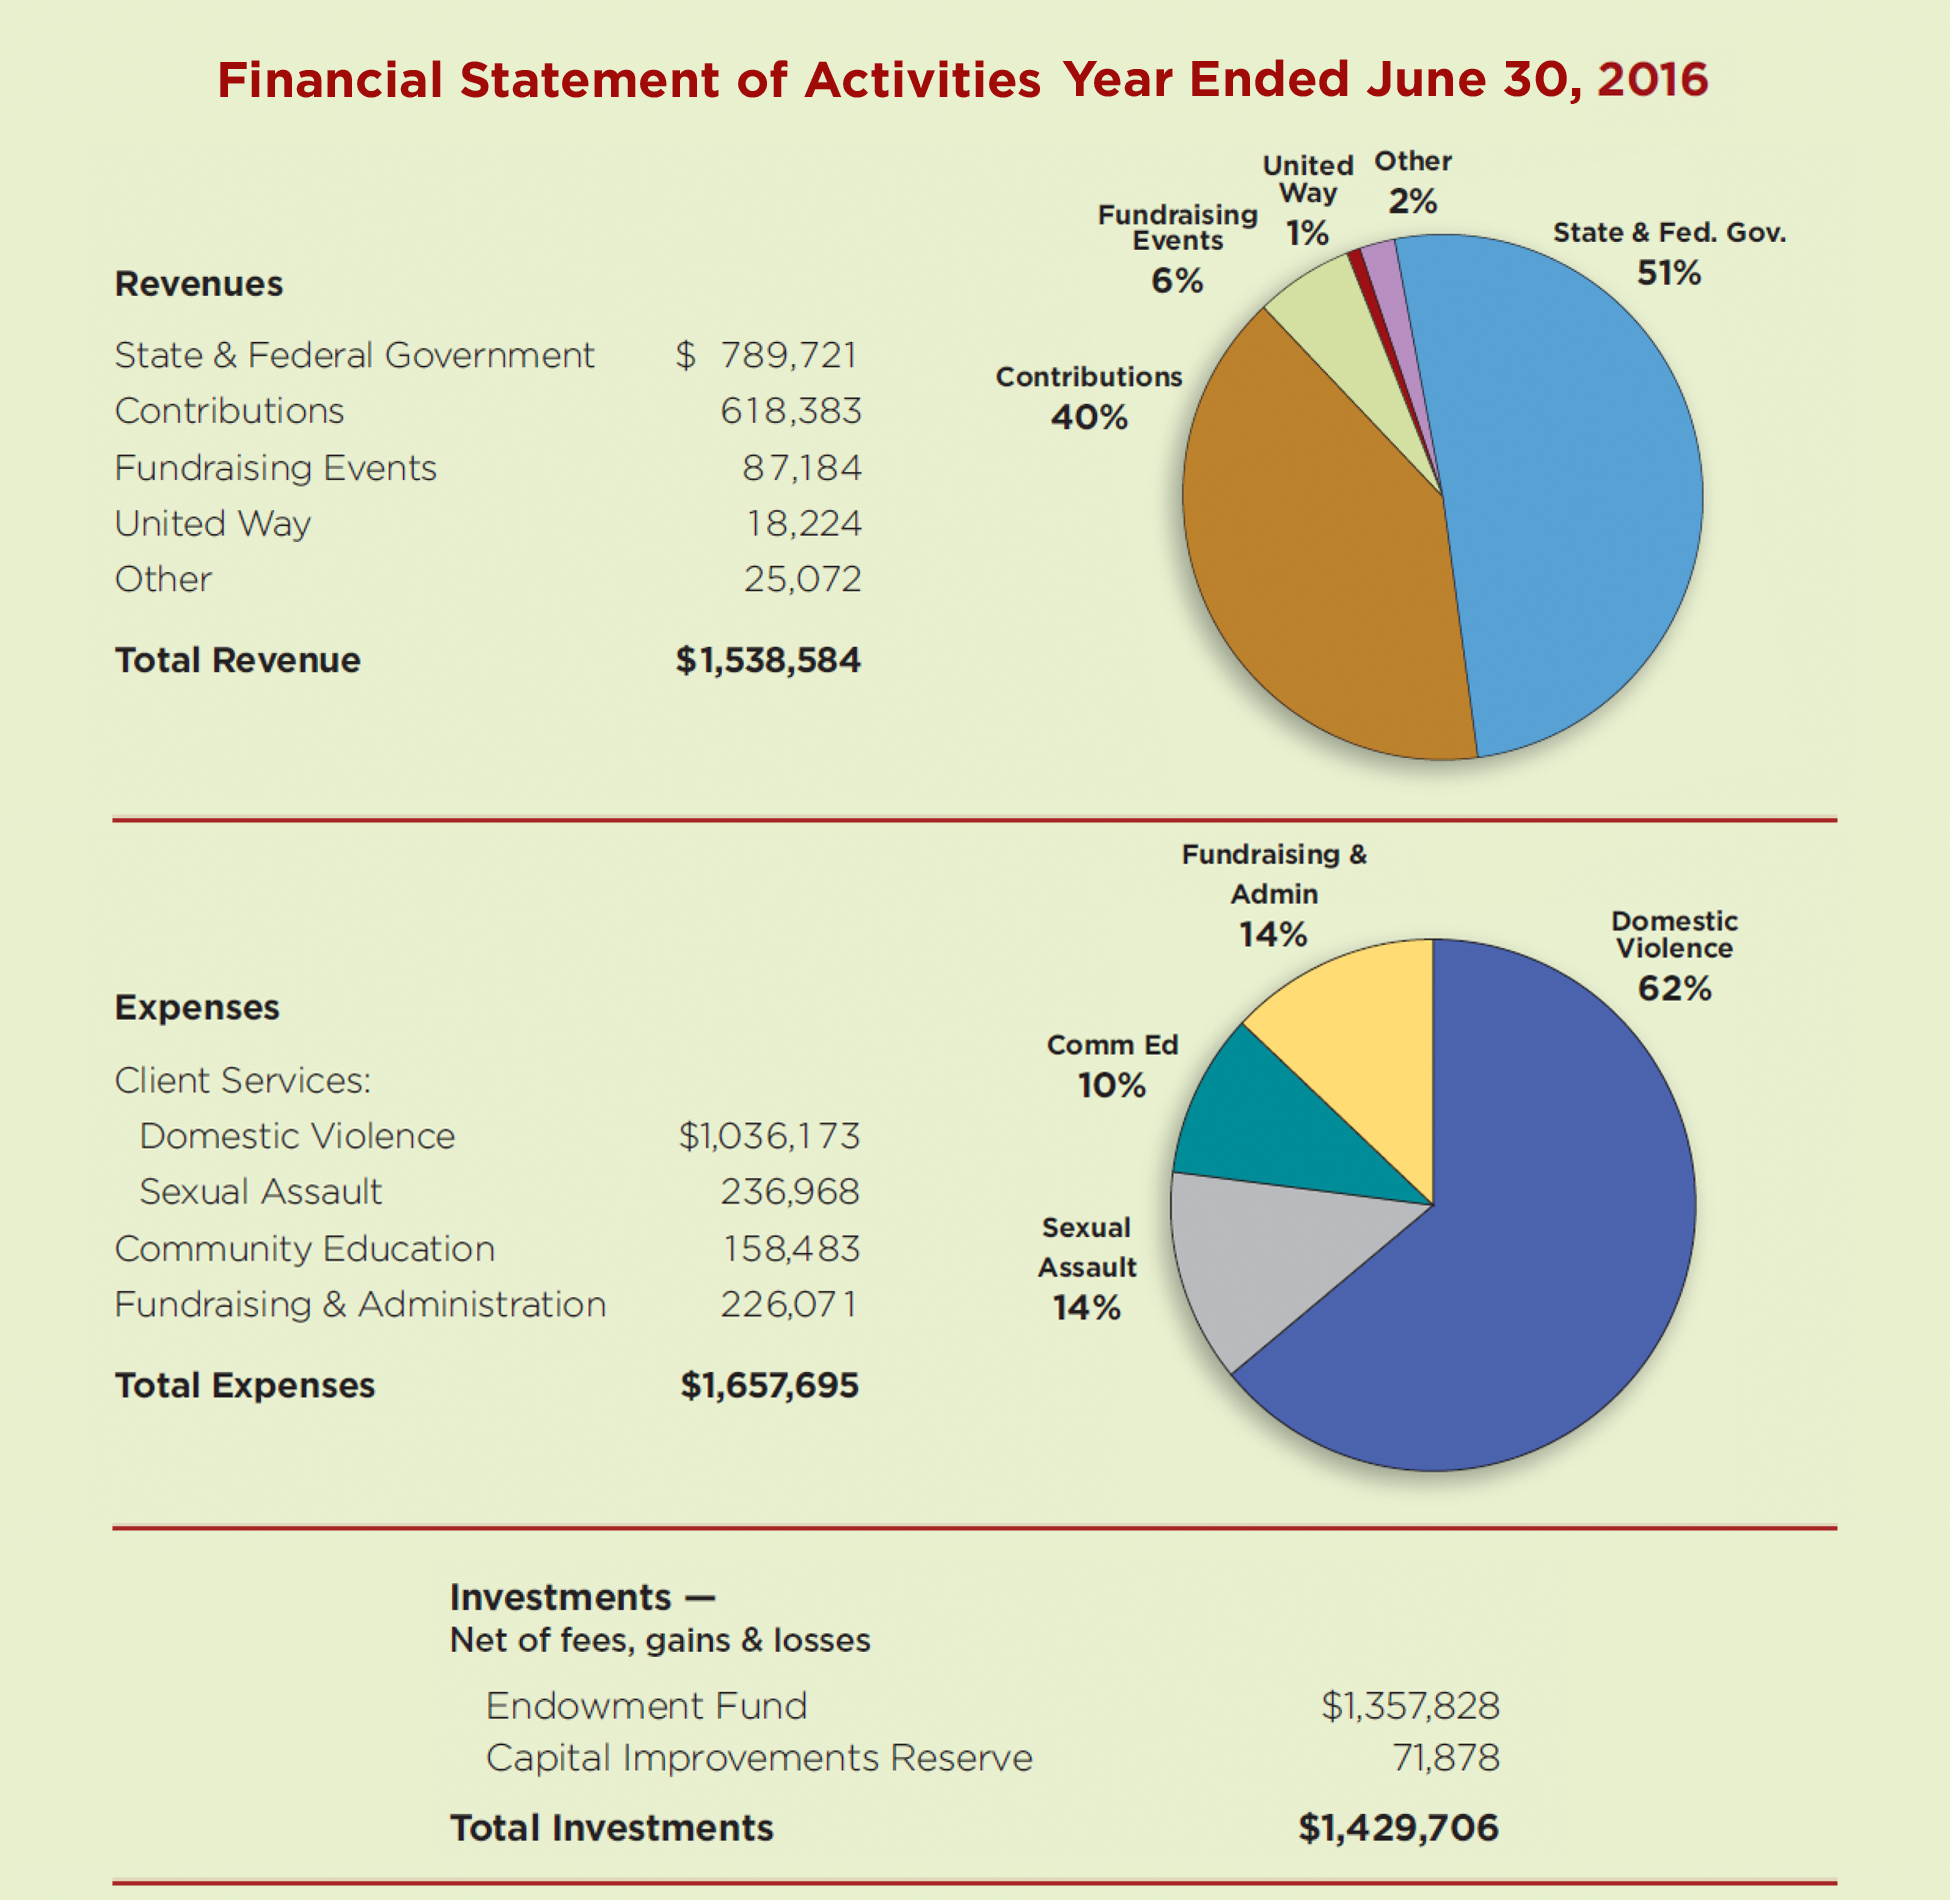 2016 Financials